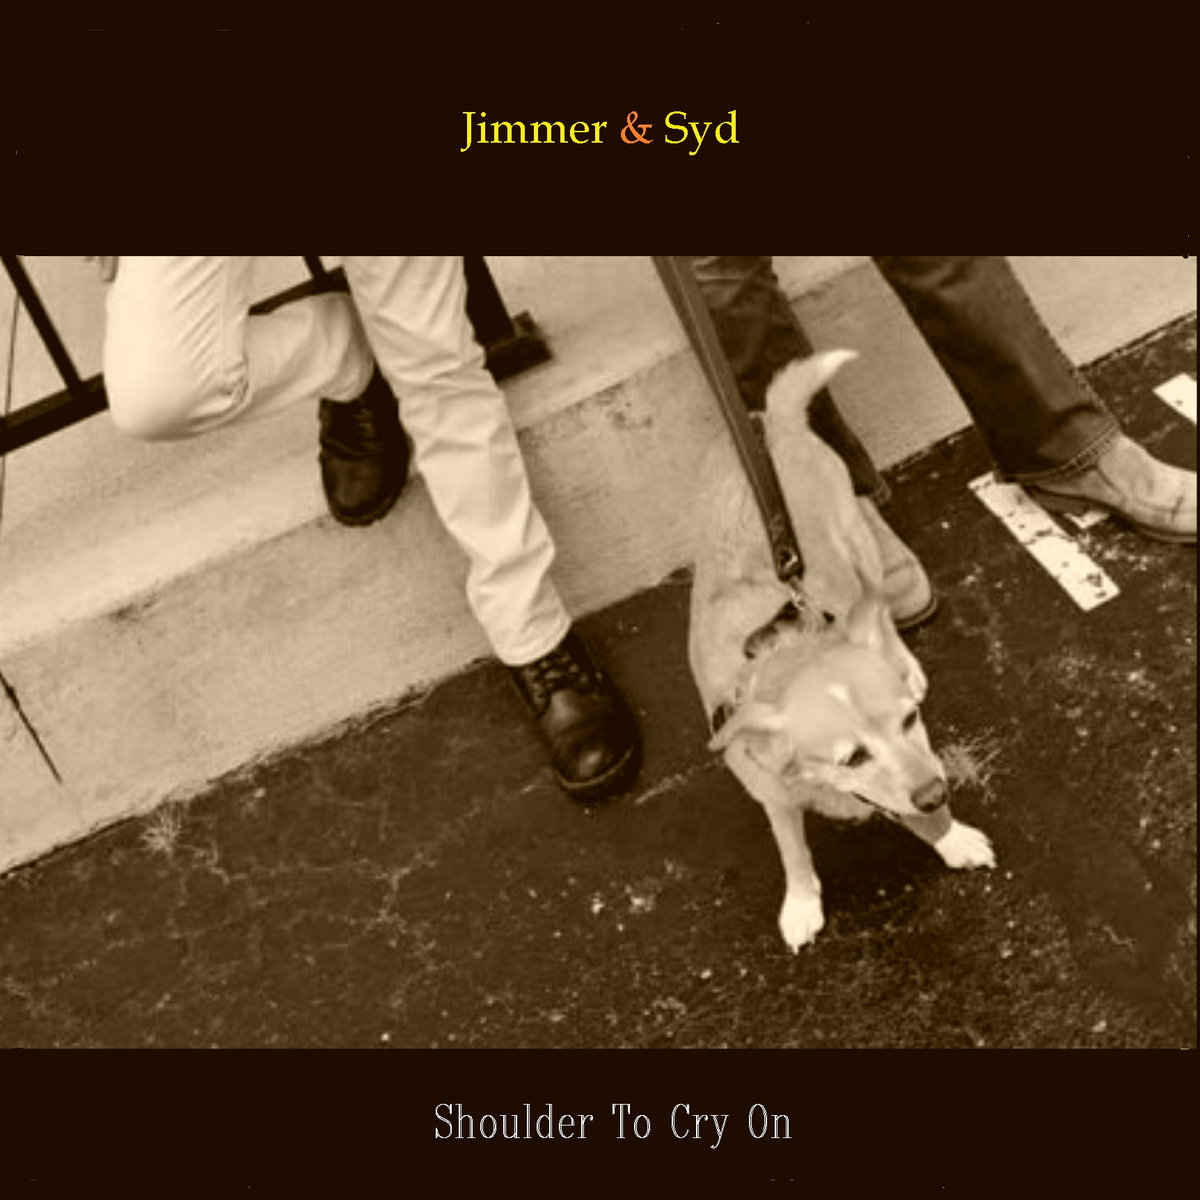 Feeling Steady In A Wobbly World: Jimmer and Syd's Shoulder To Cry On